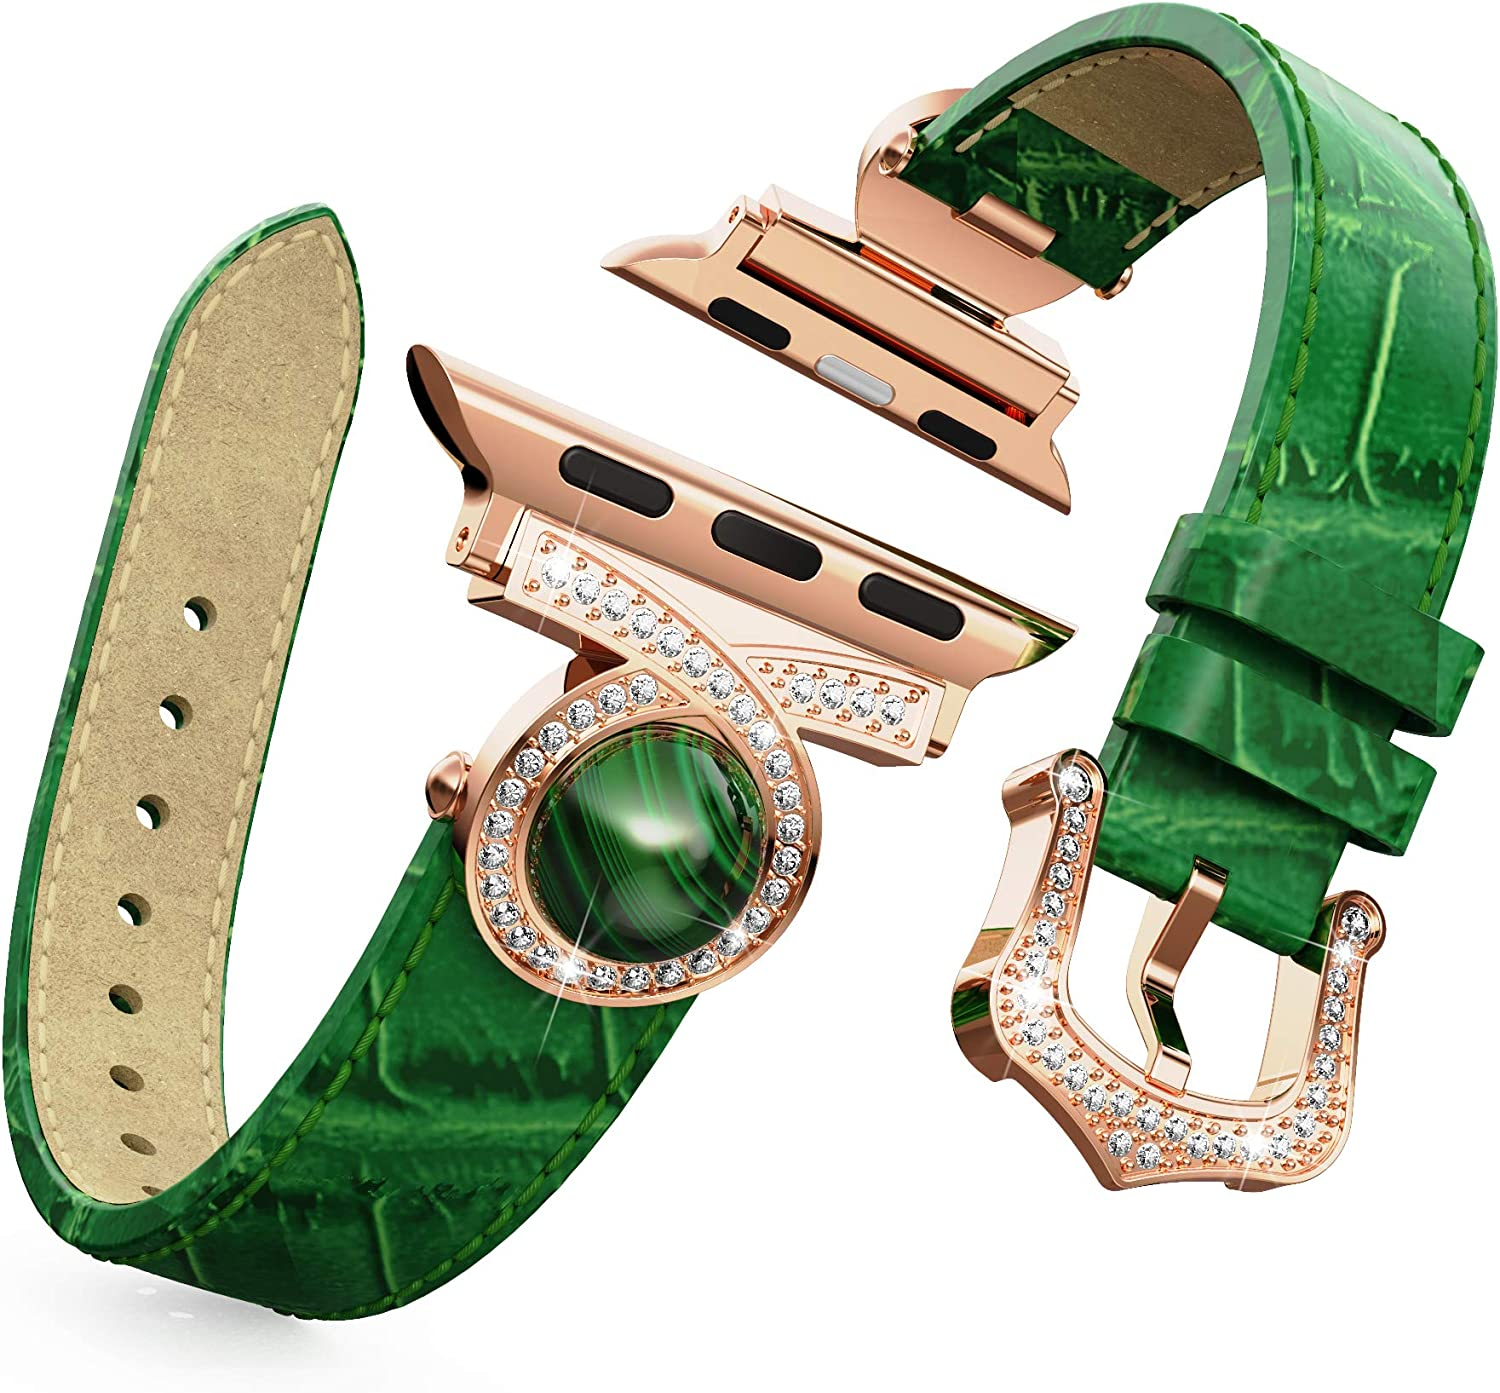 BaiHui Thin Leather Watch Band Compatible with Apple Watch 42mm 44mm Series 6/SE/5/4/3/2, Genuine Leather with Bling Crystal Diamonds Replacement Watch Strap for Women/Girls